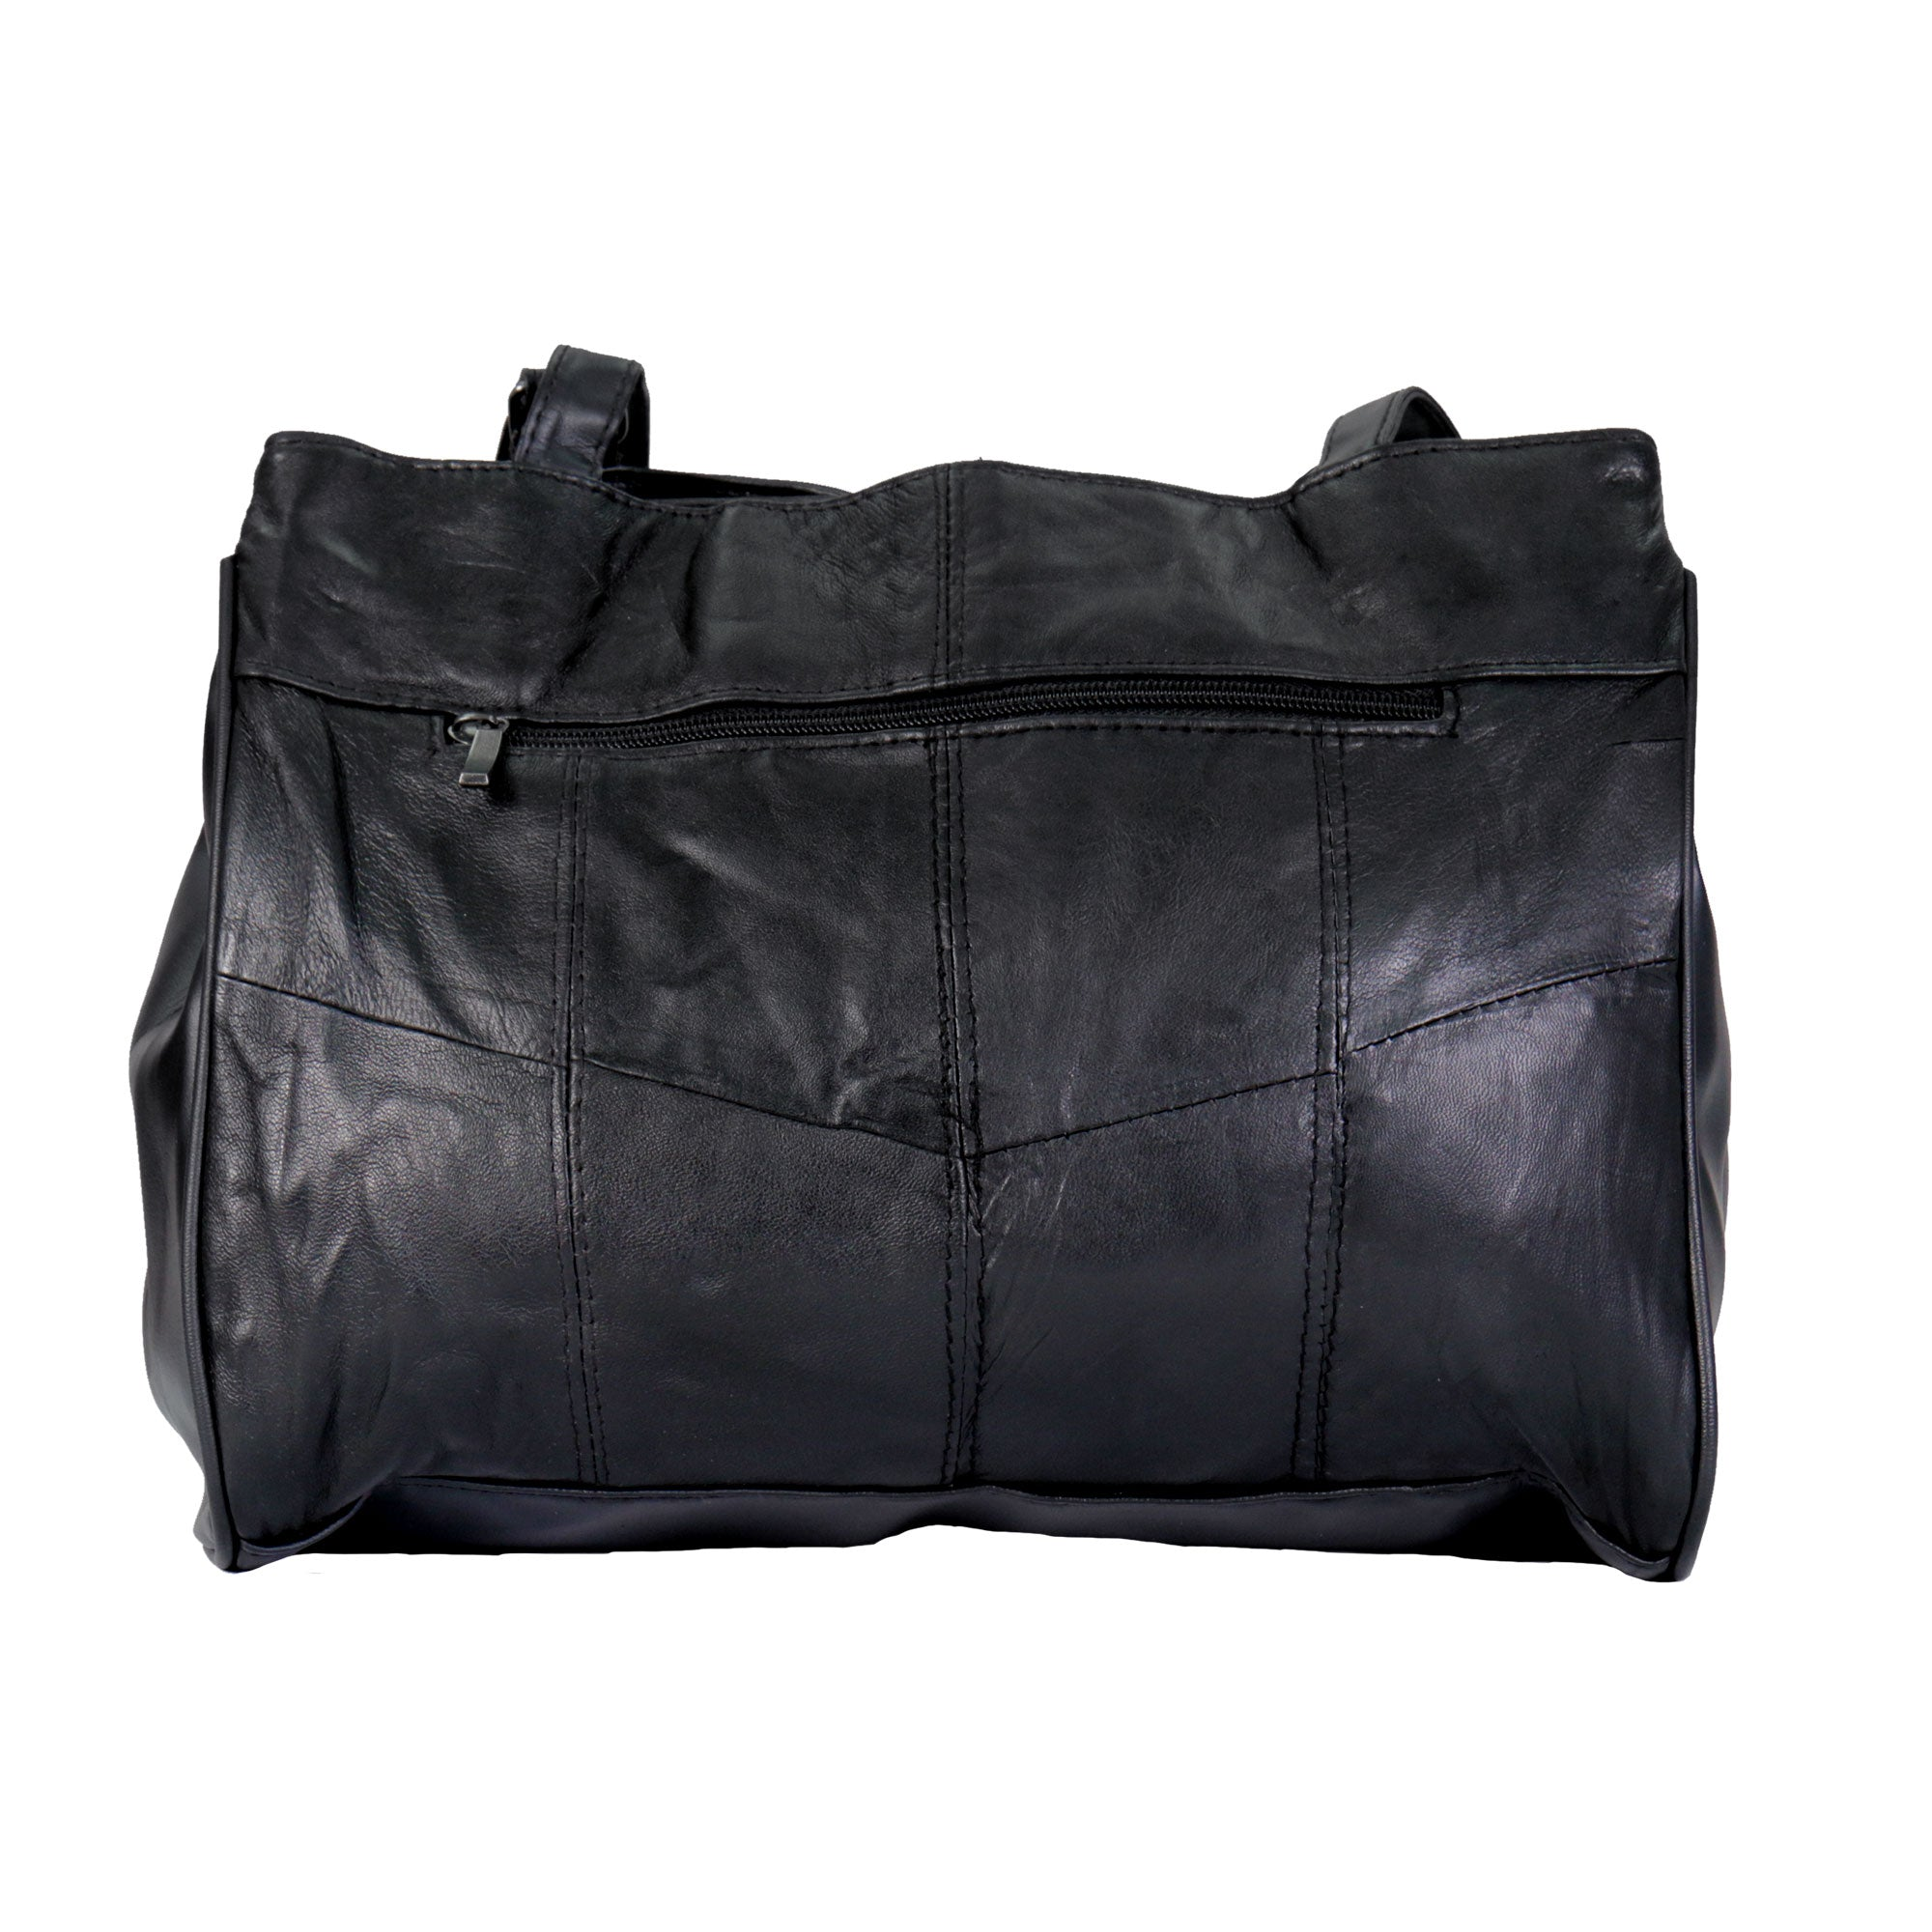 Hot Leathers 7 Pocket Leather Purse